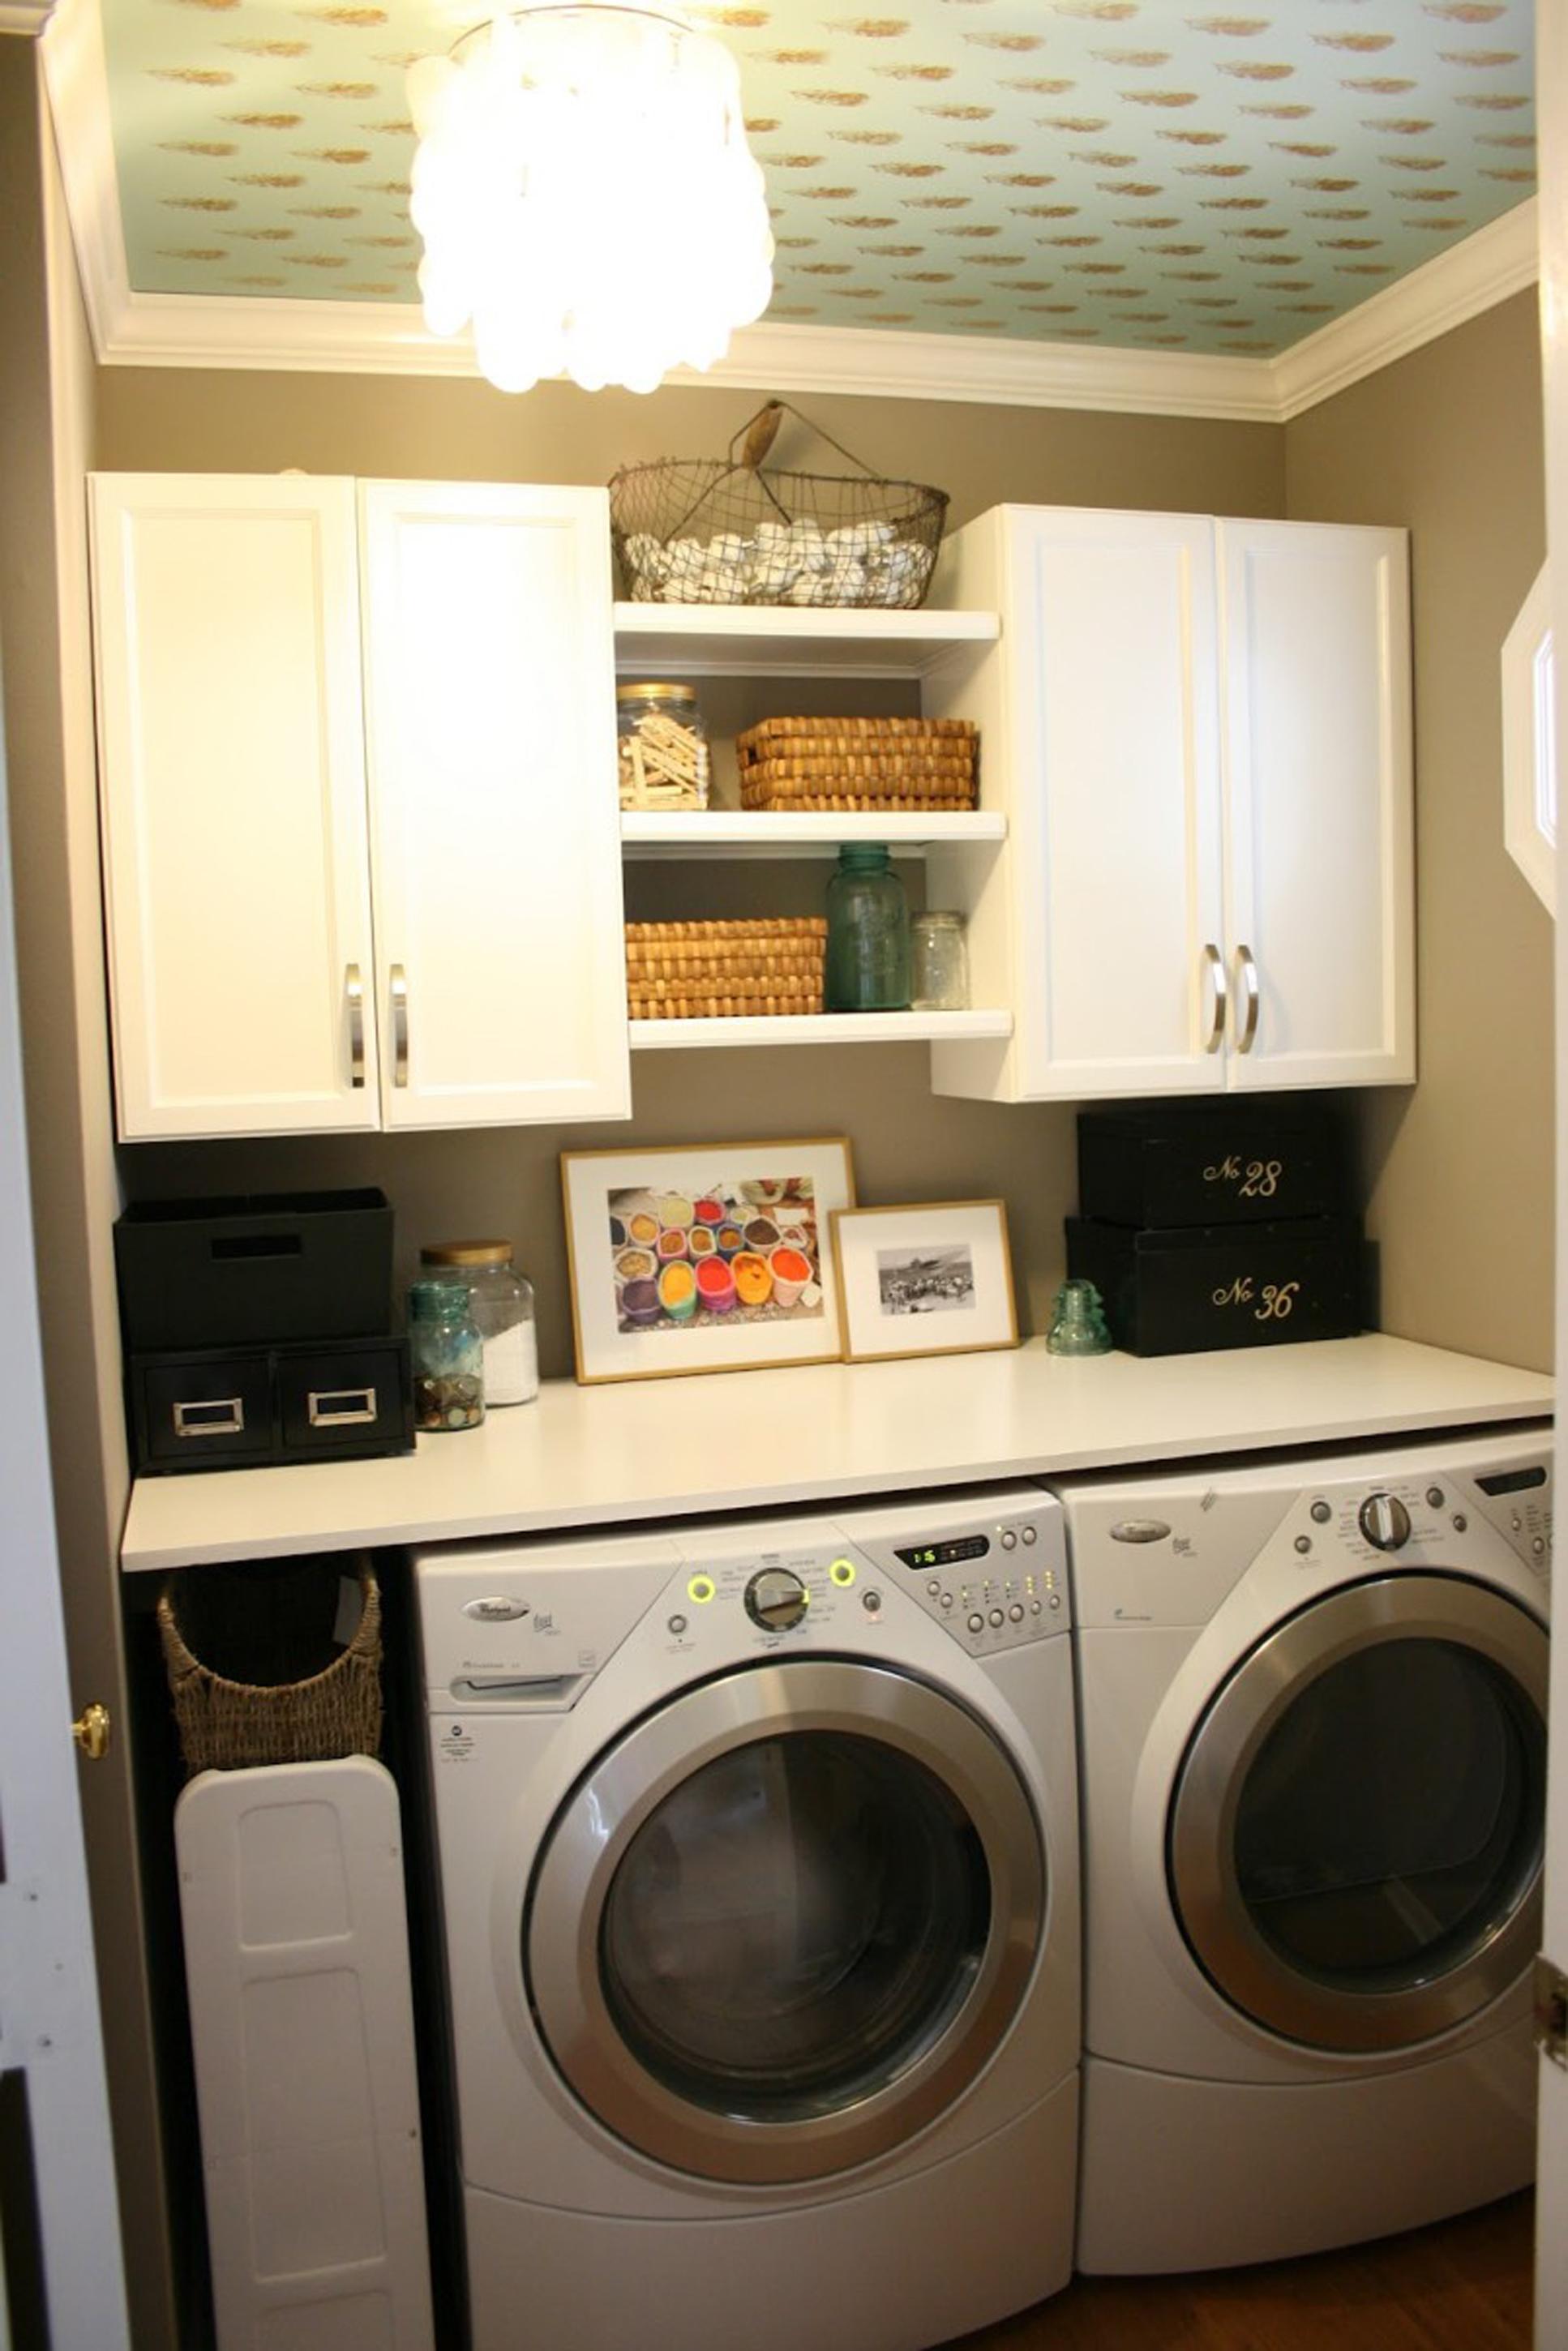 Luxurious Laundry Room Design Idea With White Cabinet White Washing Machine And Brown Wall Amazing Laundry Room Design Ideas (Image 20 of 123)